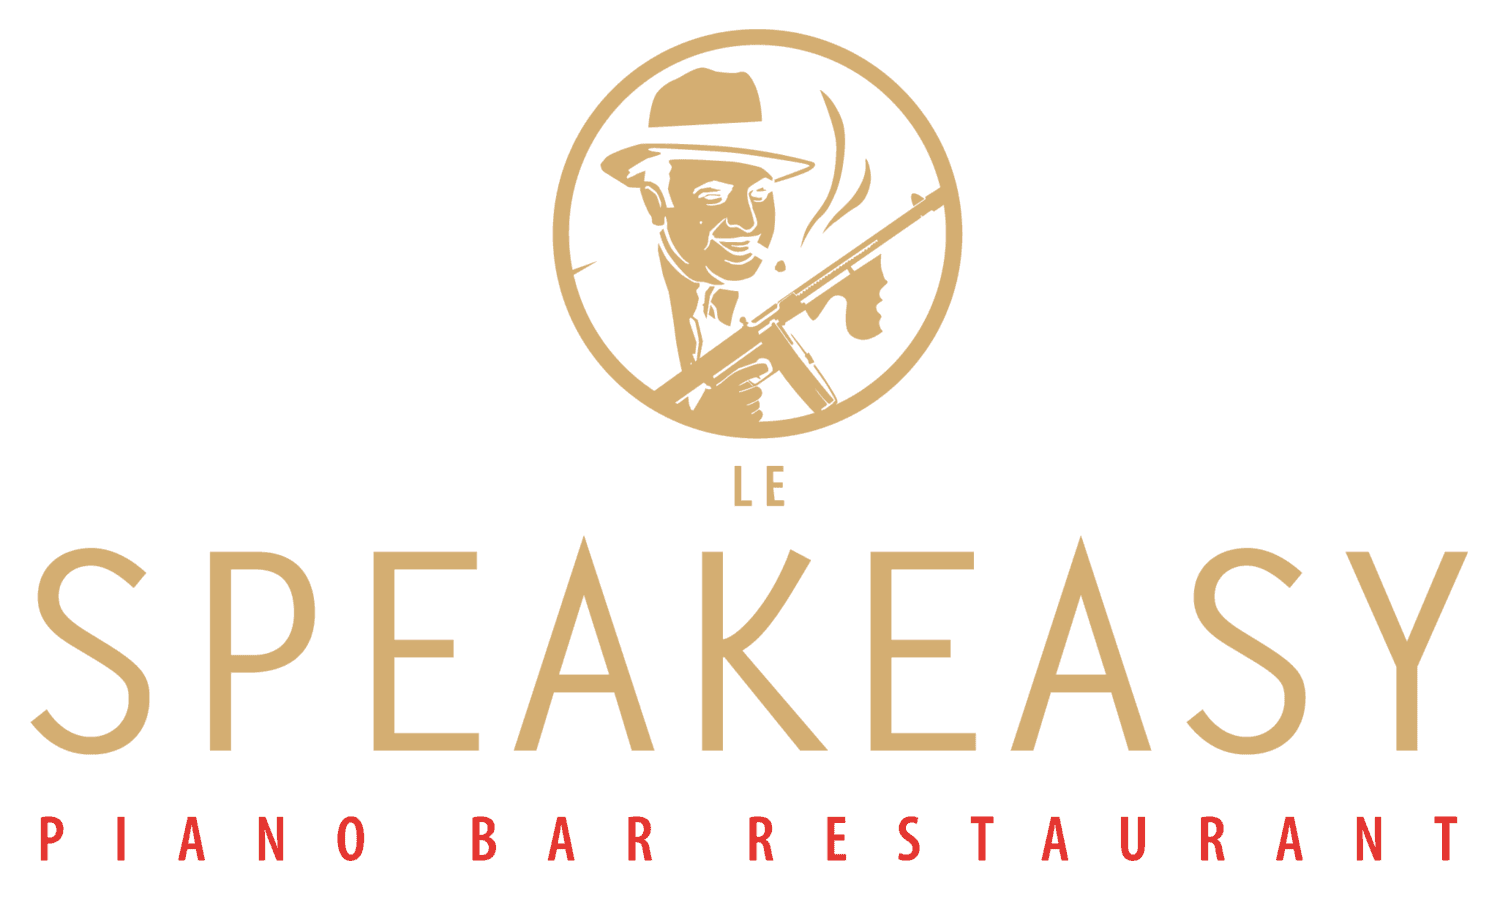 Le Speakeasy 📍 Restaurant Piano Bar